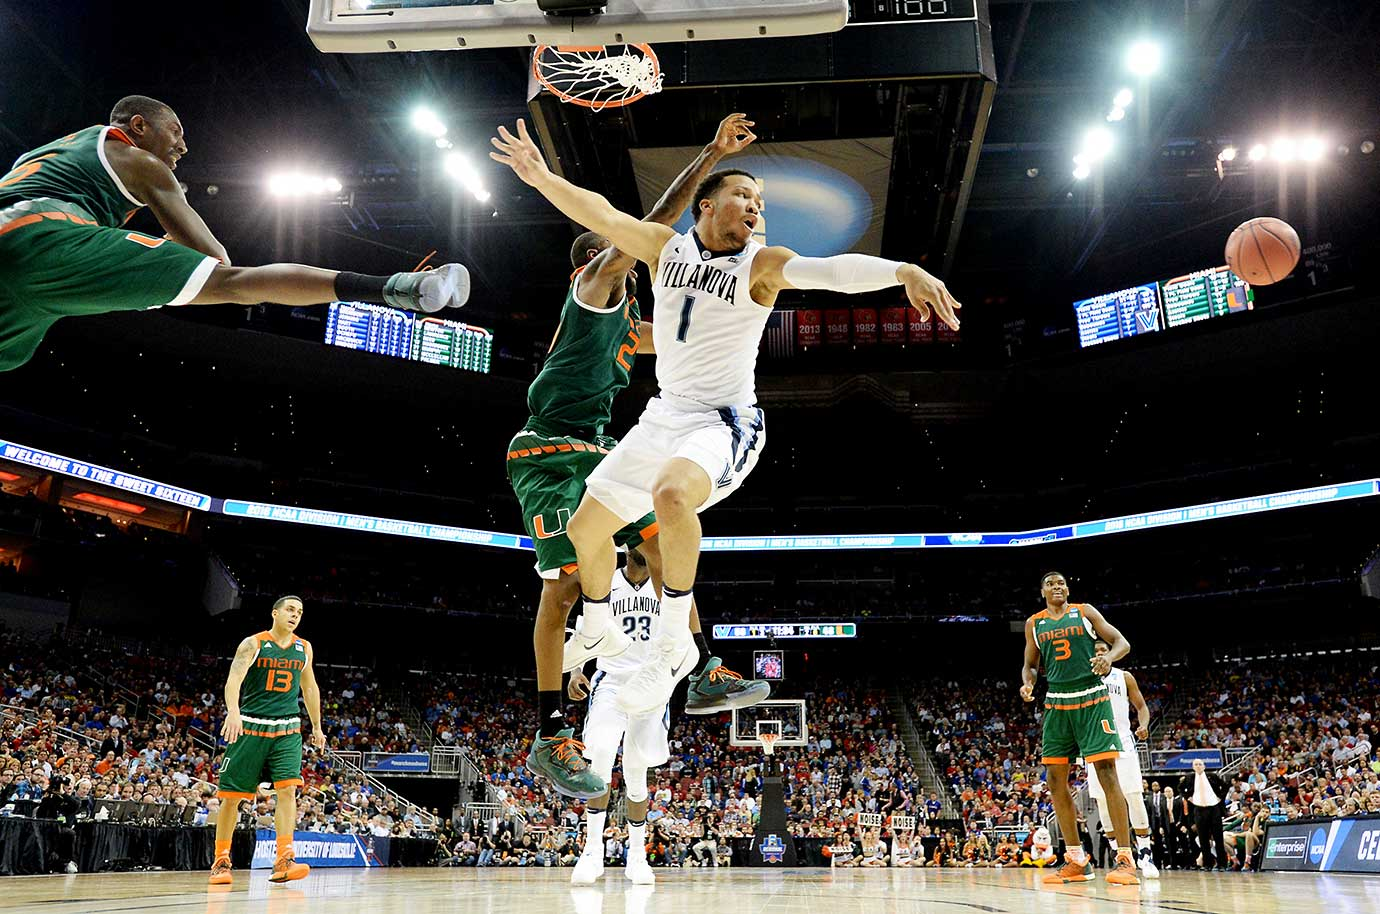 Jalen Brunson of Villanova finds himself surrounded by Miami defenders.